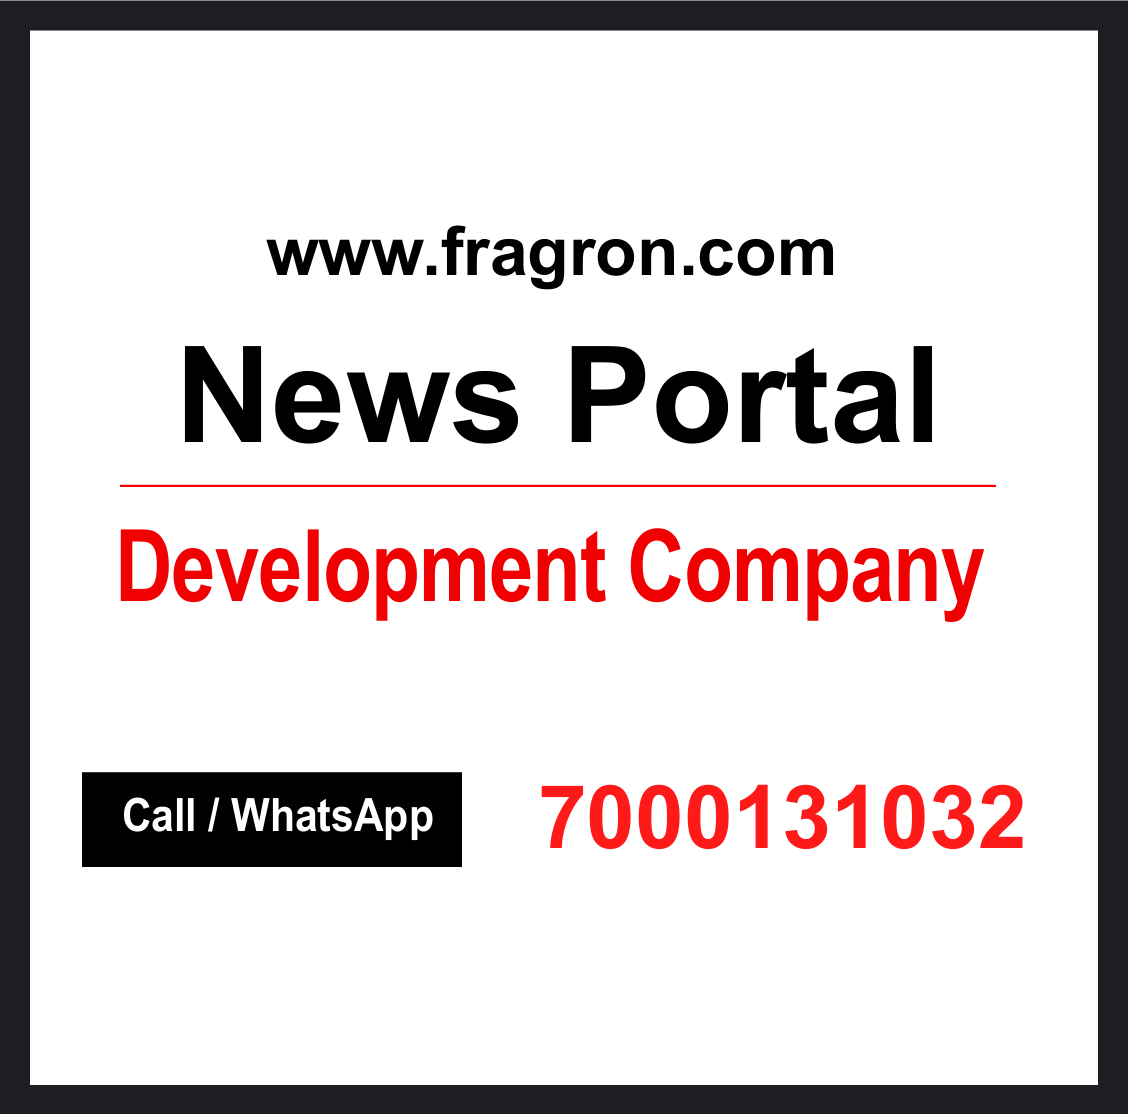 News Portal Development Company.